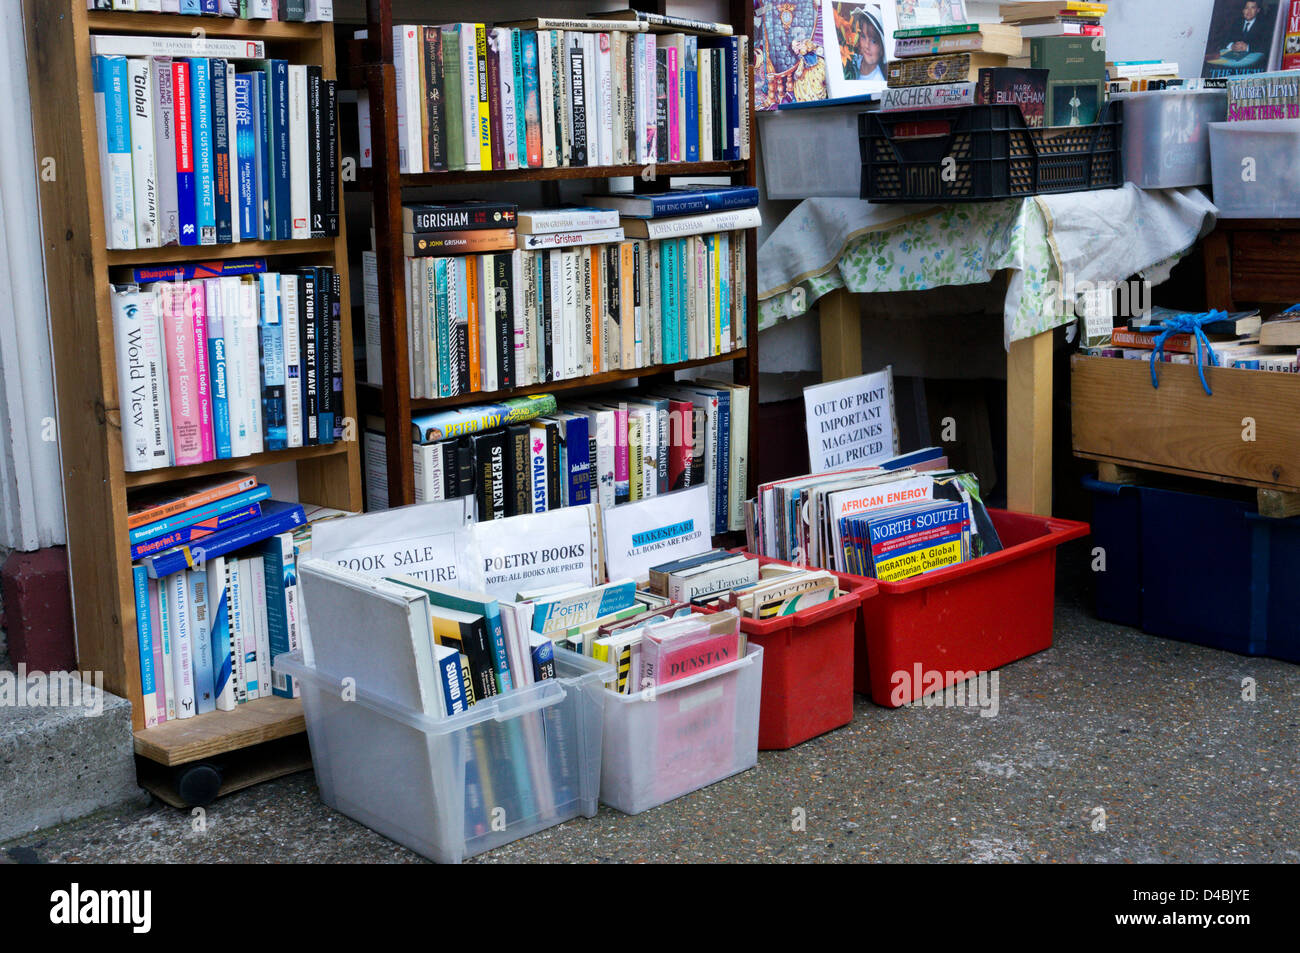 Books stacked on shelves and in boxes outside a secondhand bookshop. - Stock Image